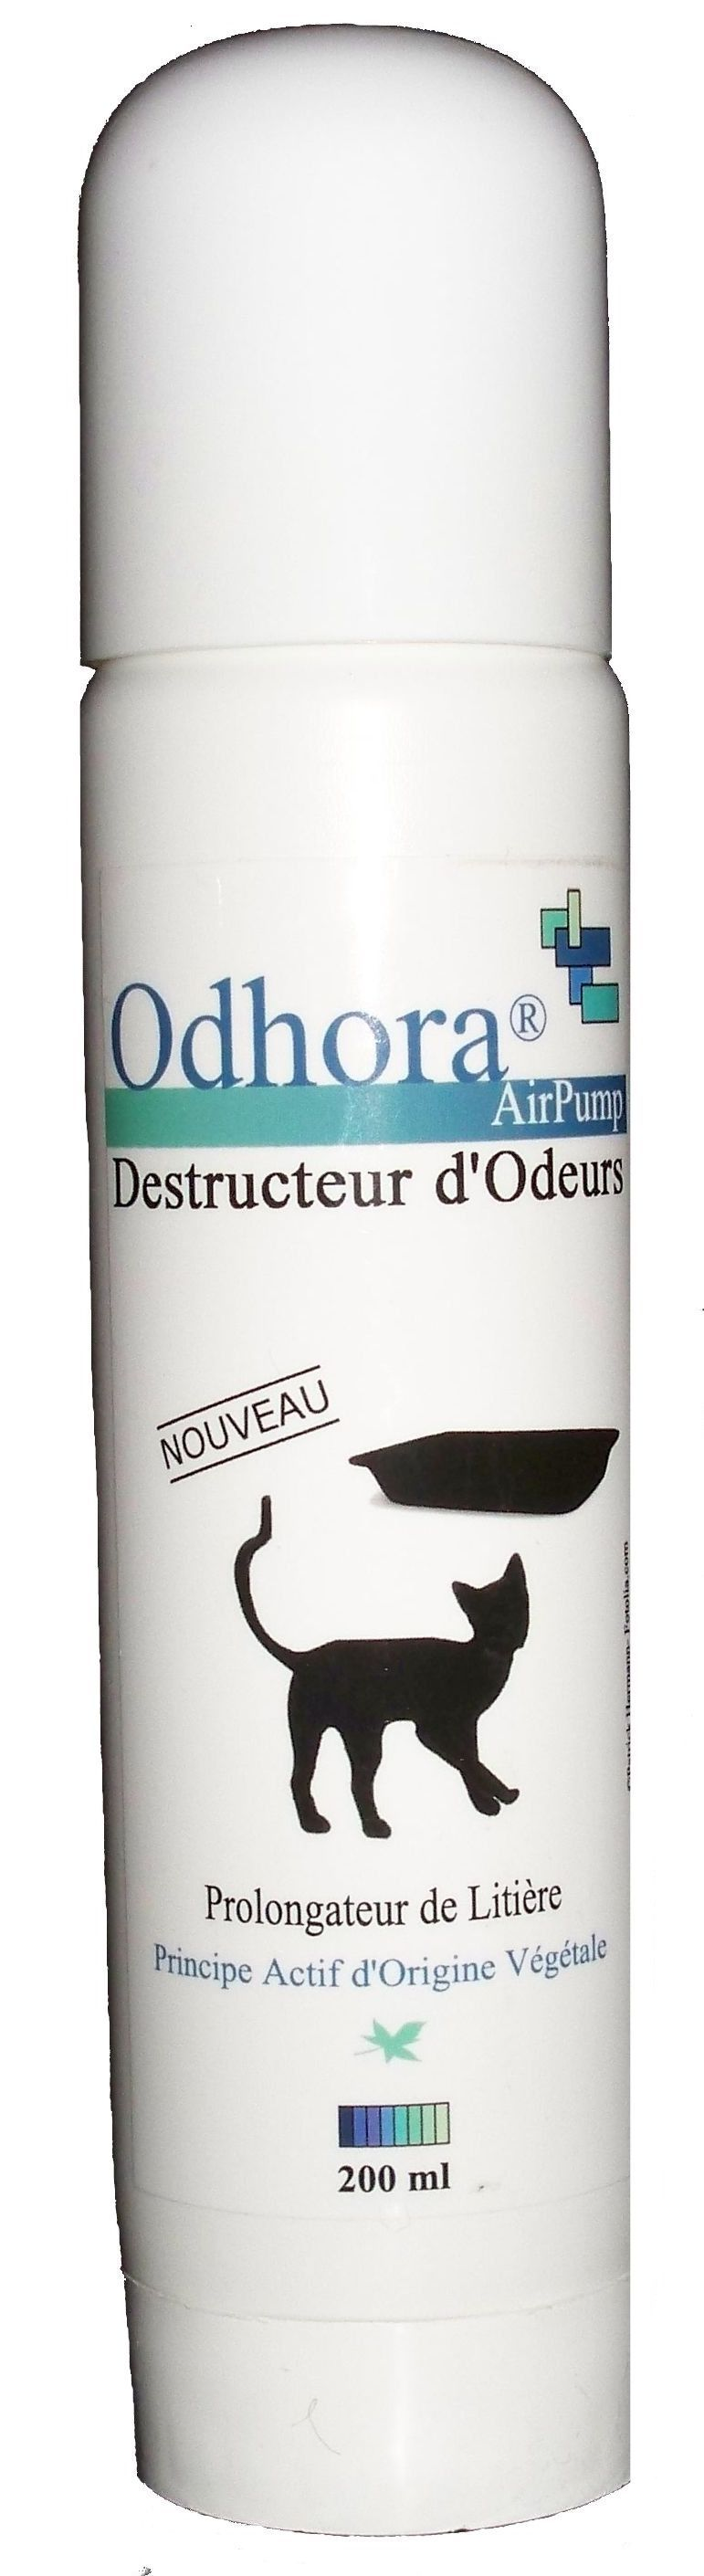 ANTI-ODEUR SPECIAL LITIERE